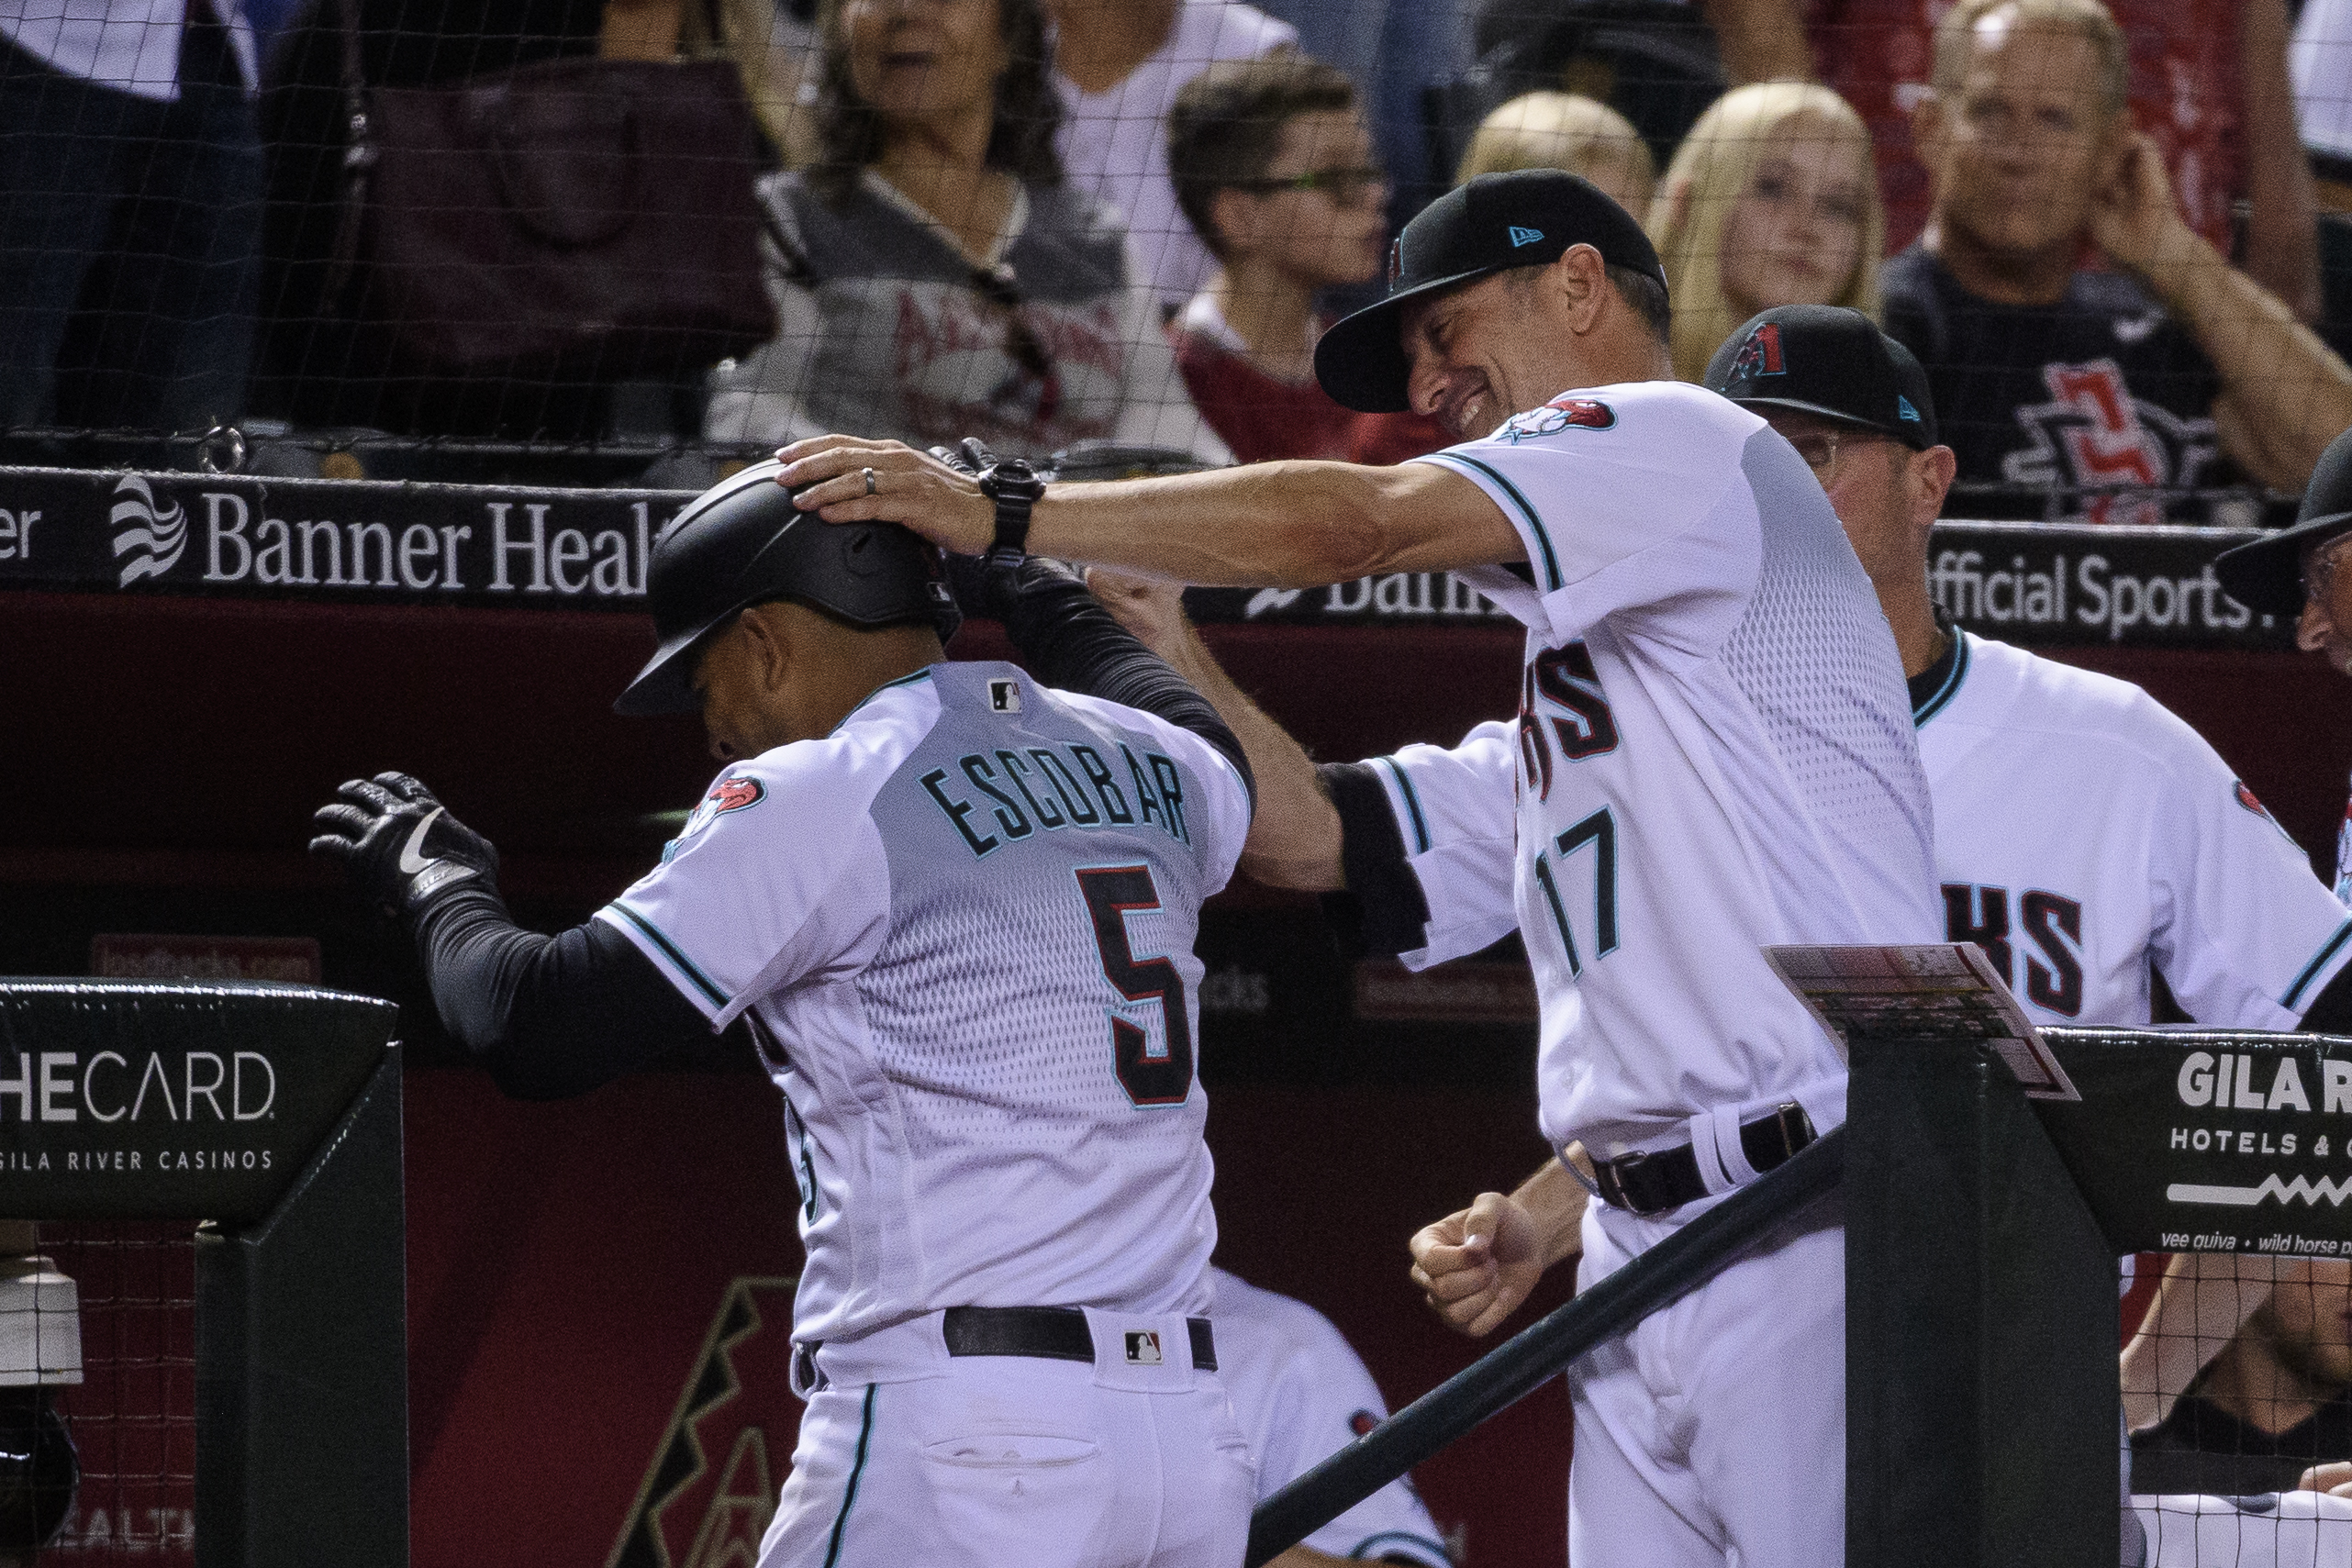 Torey Lovullo is proud of Escobar who hit a homer.